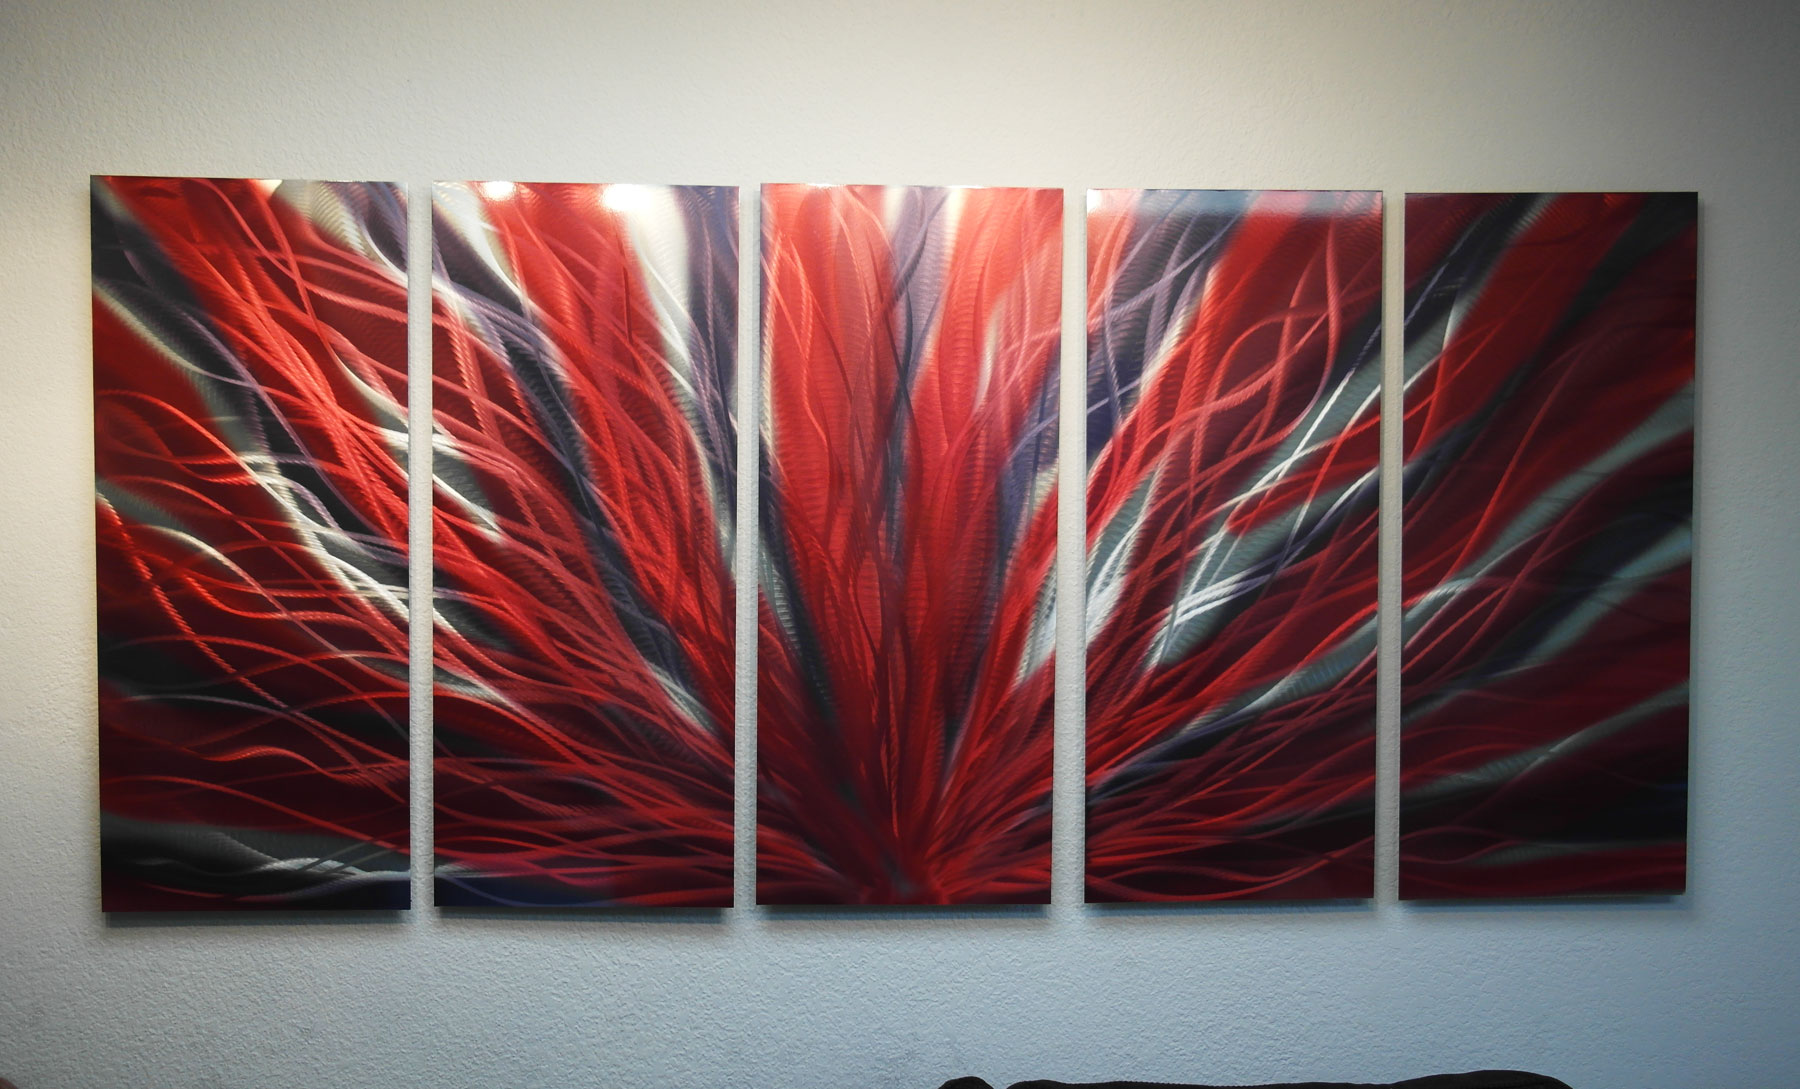 Red And Black Metal Wall Art Large Radiance Red And Black Metal Wall Art Abstract Sculpture